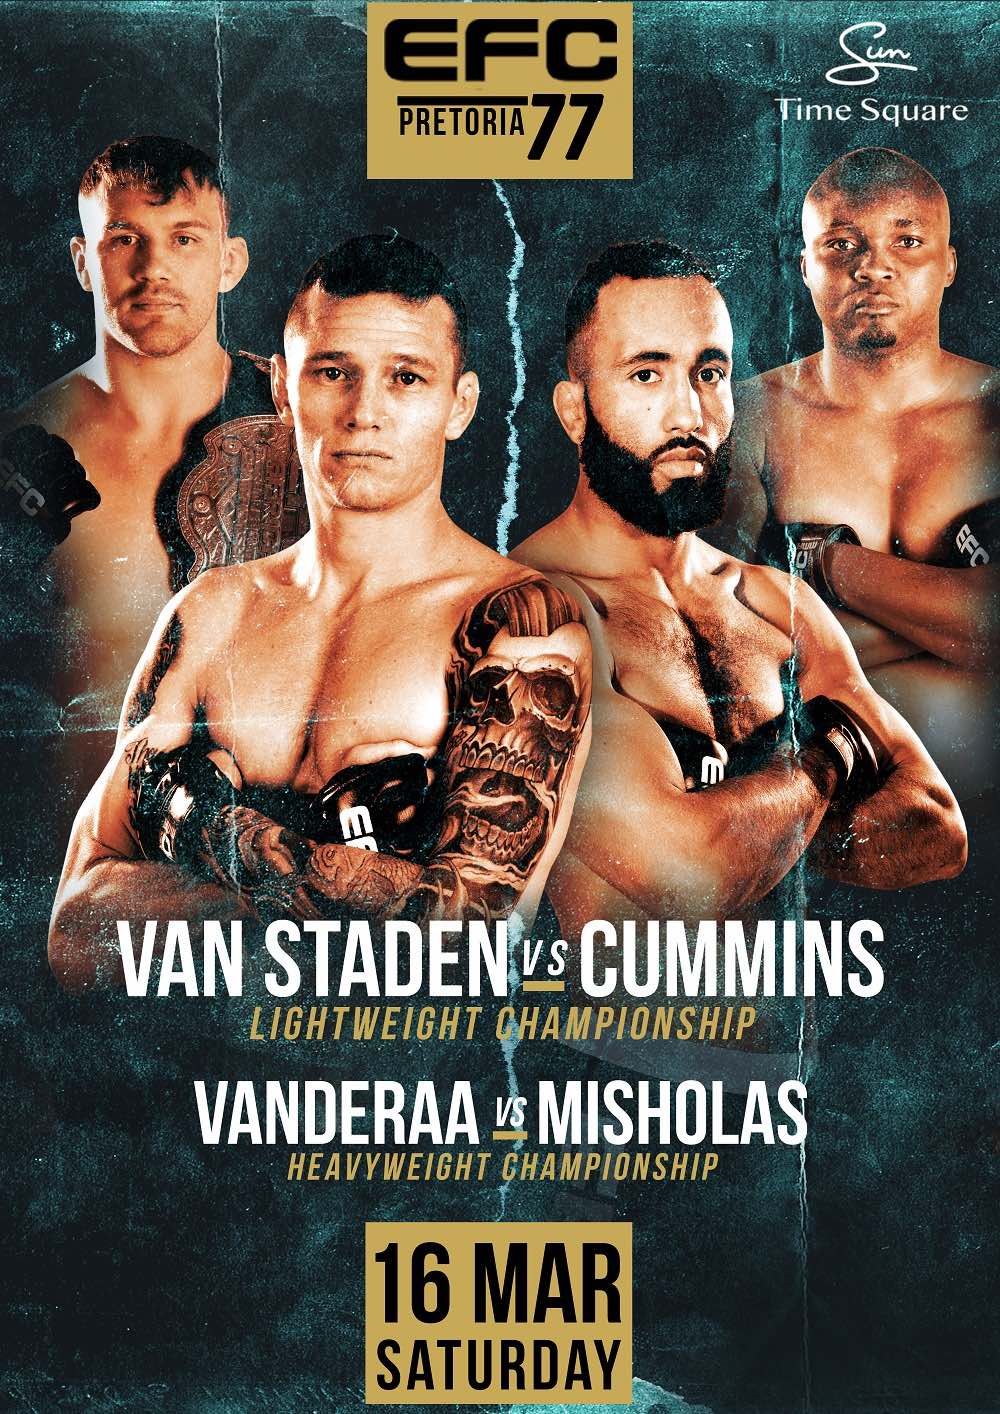 The 2019 EFC schedule kicks off with EFC 77 and 12 explosive MMA fights